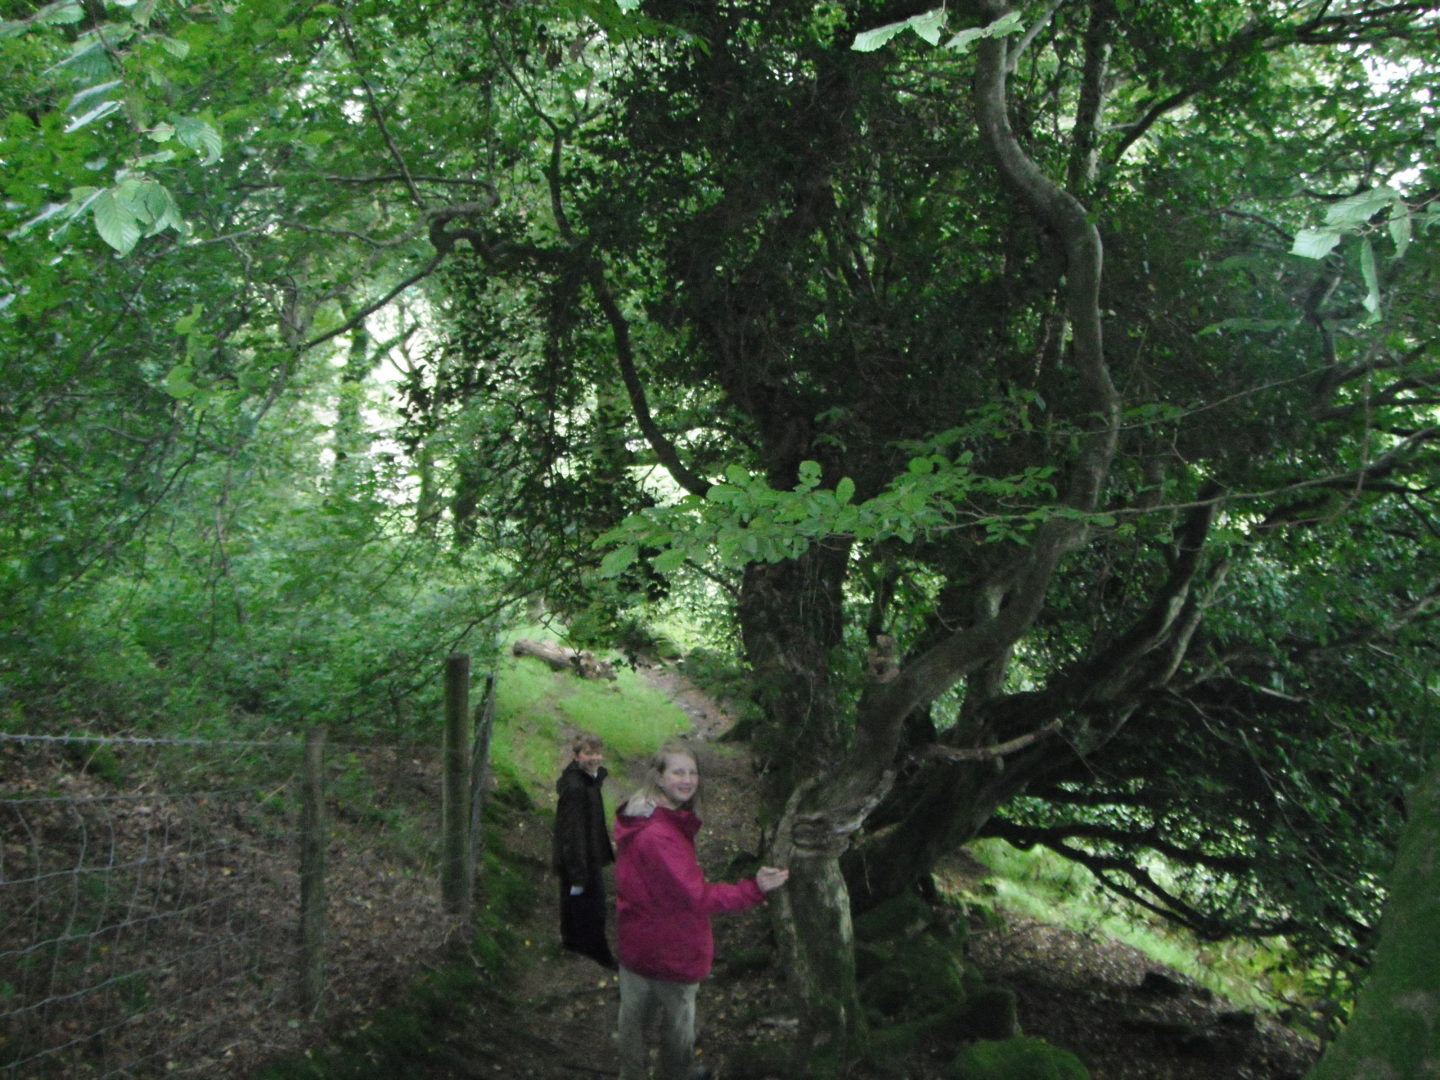 Xene and Lochlan going deeper into the trees on woodland walks